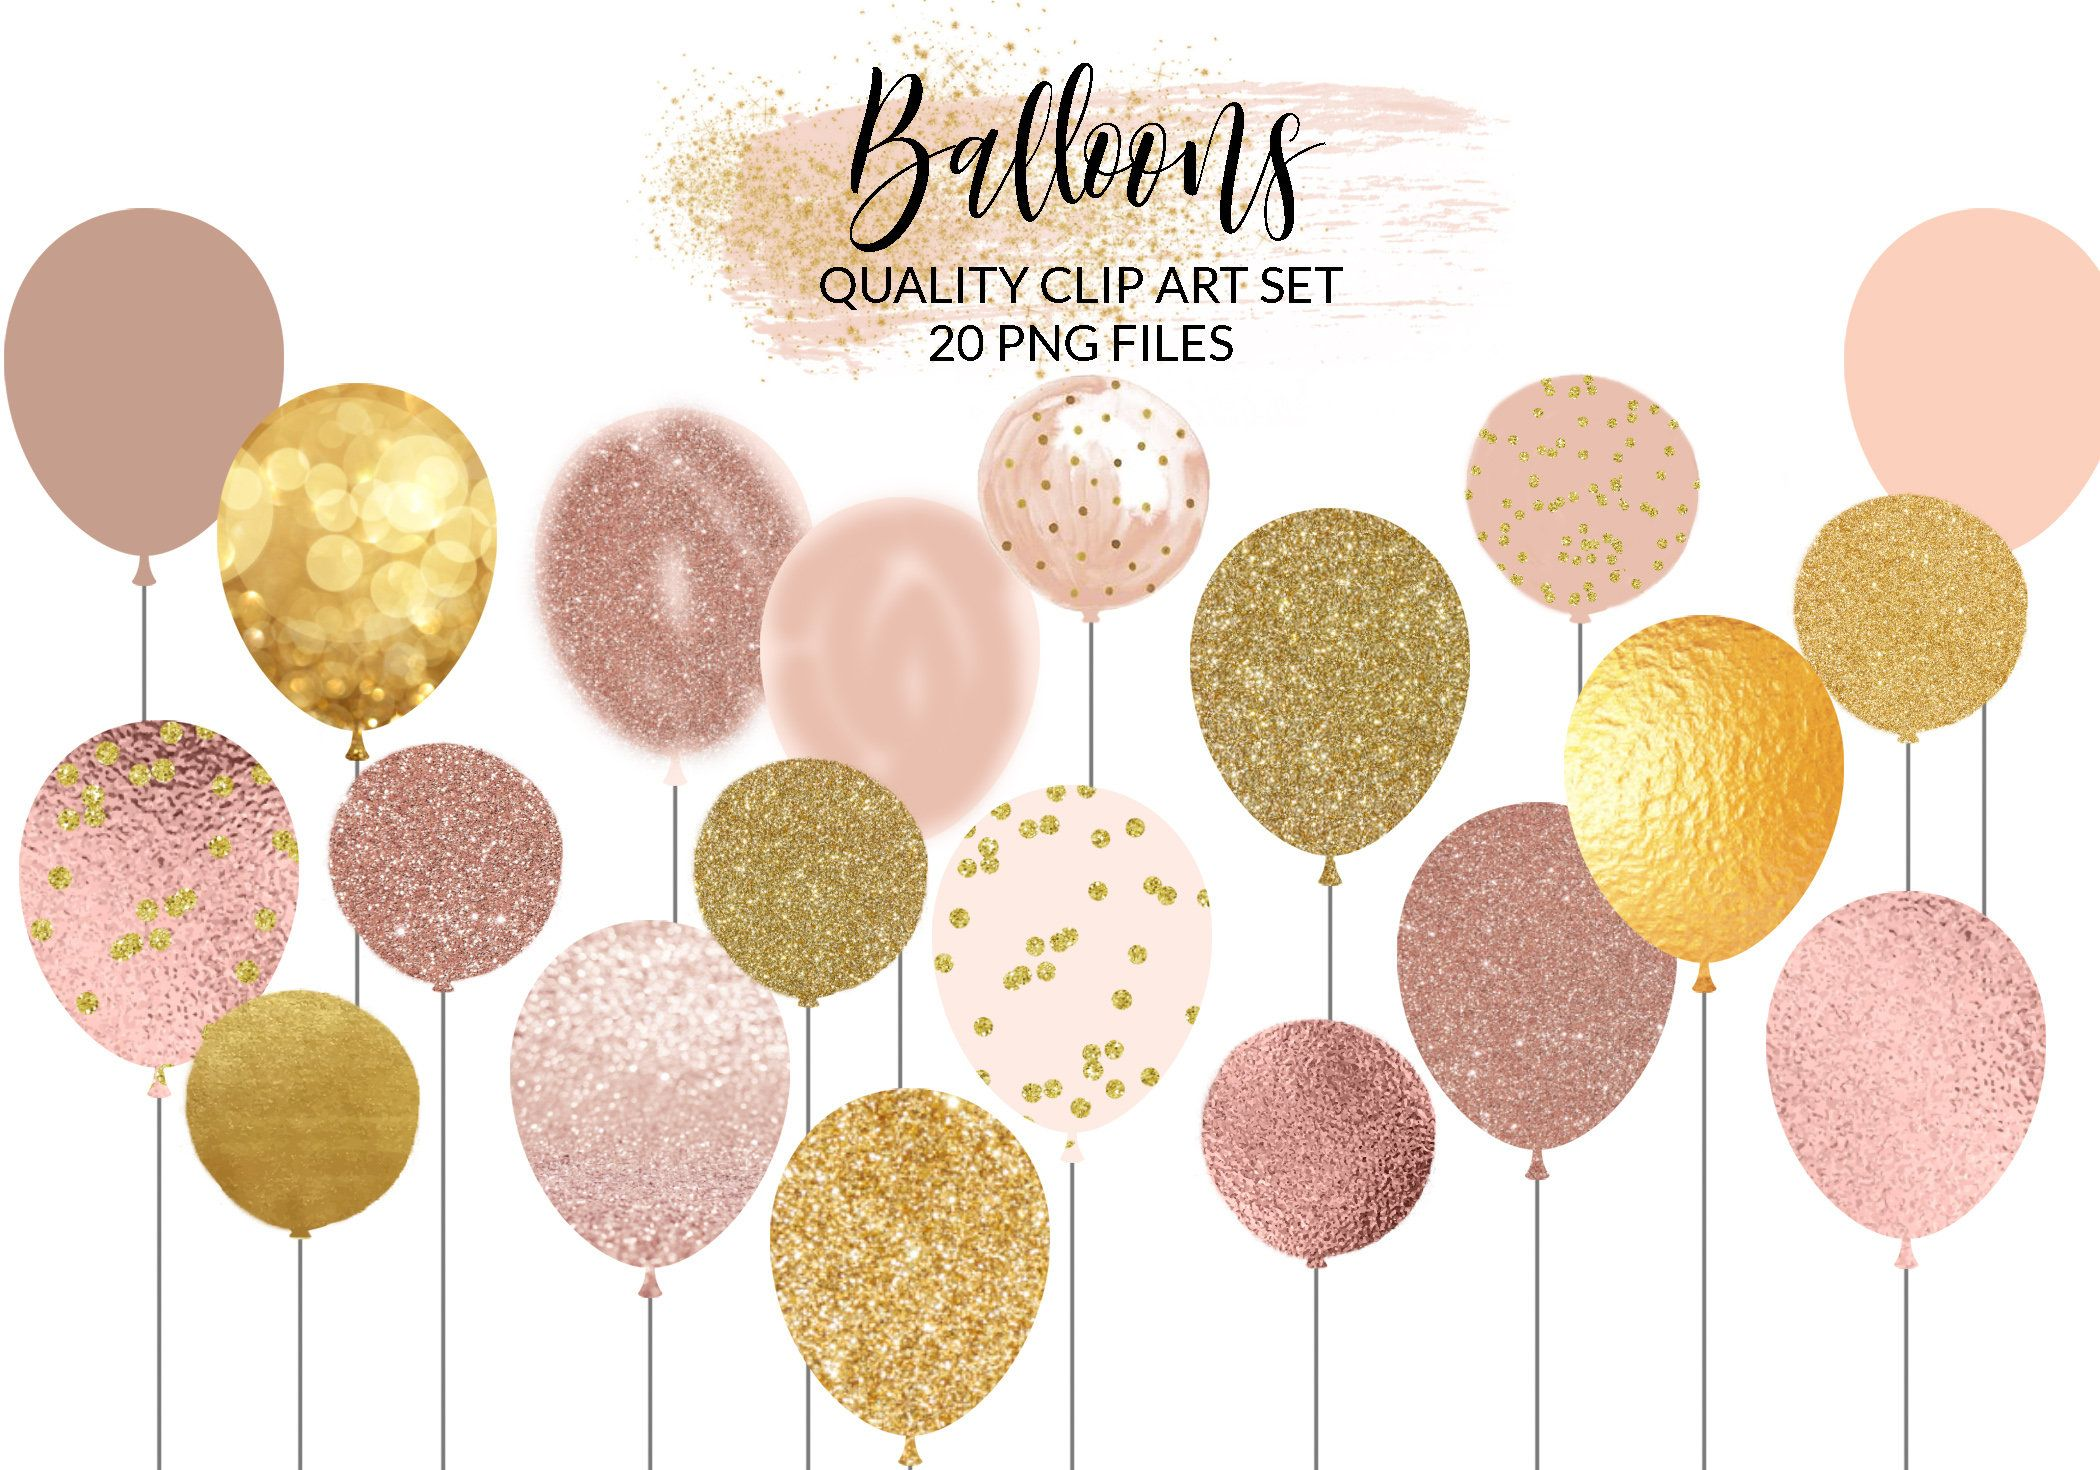 Rose Gold Balloons Clipart Glitter Balloons Clip Art Foil Balloon Png Pastel Balloons Party Baby Shower Clipart Free Commercial In 2021 Glitter Balloons Balloon Clipart Balloons